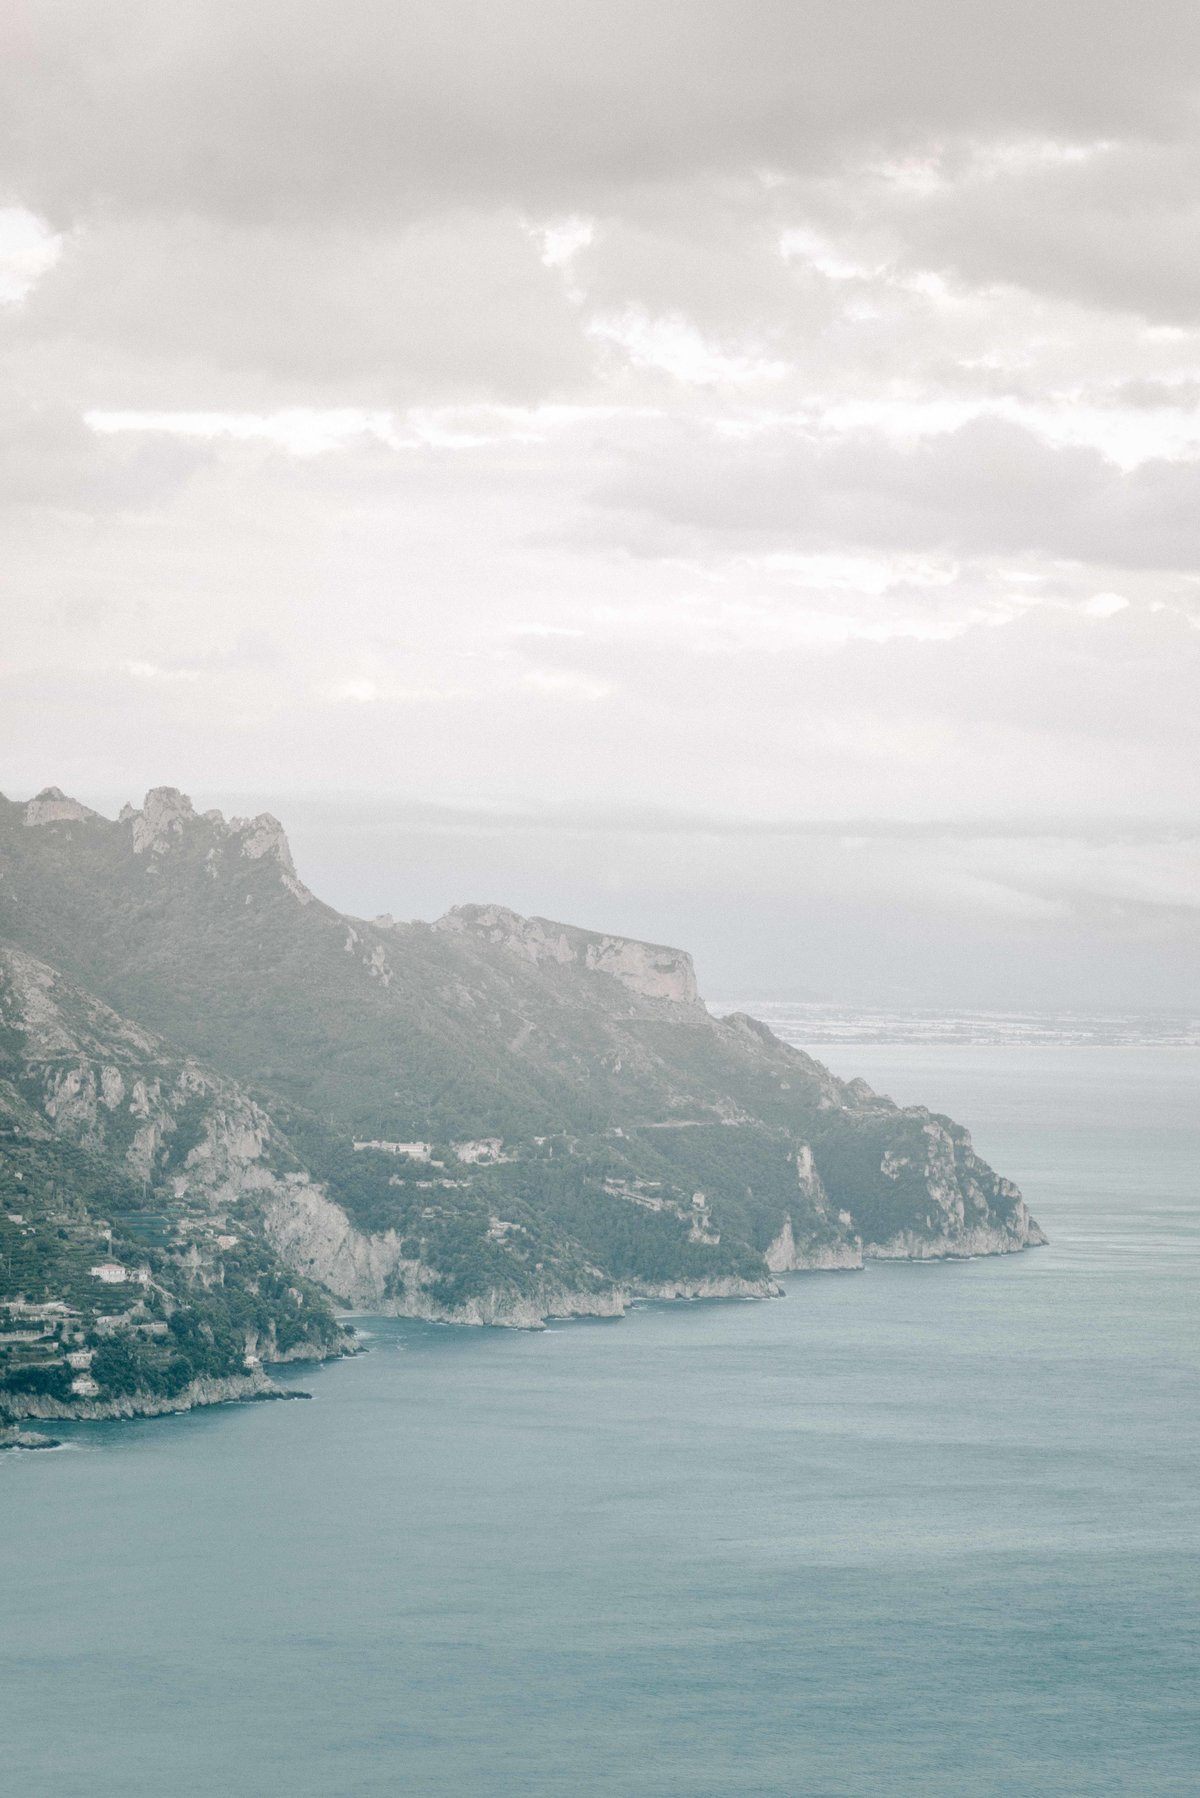 engagement_amalficoast (38 von 40)